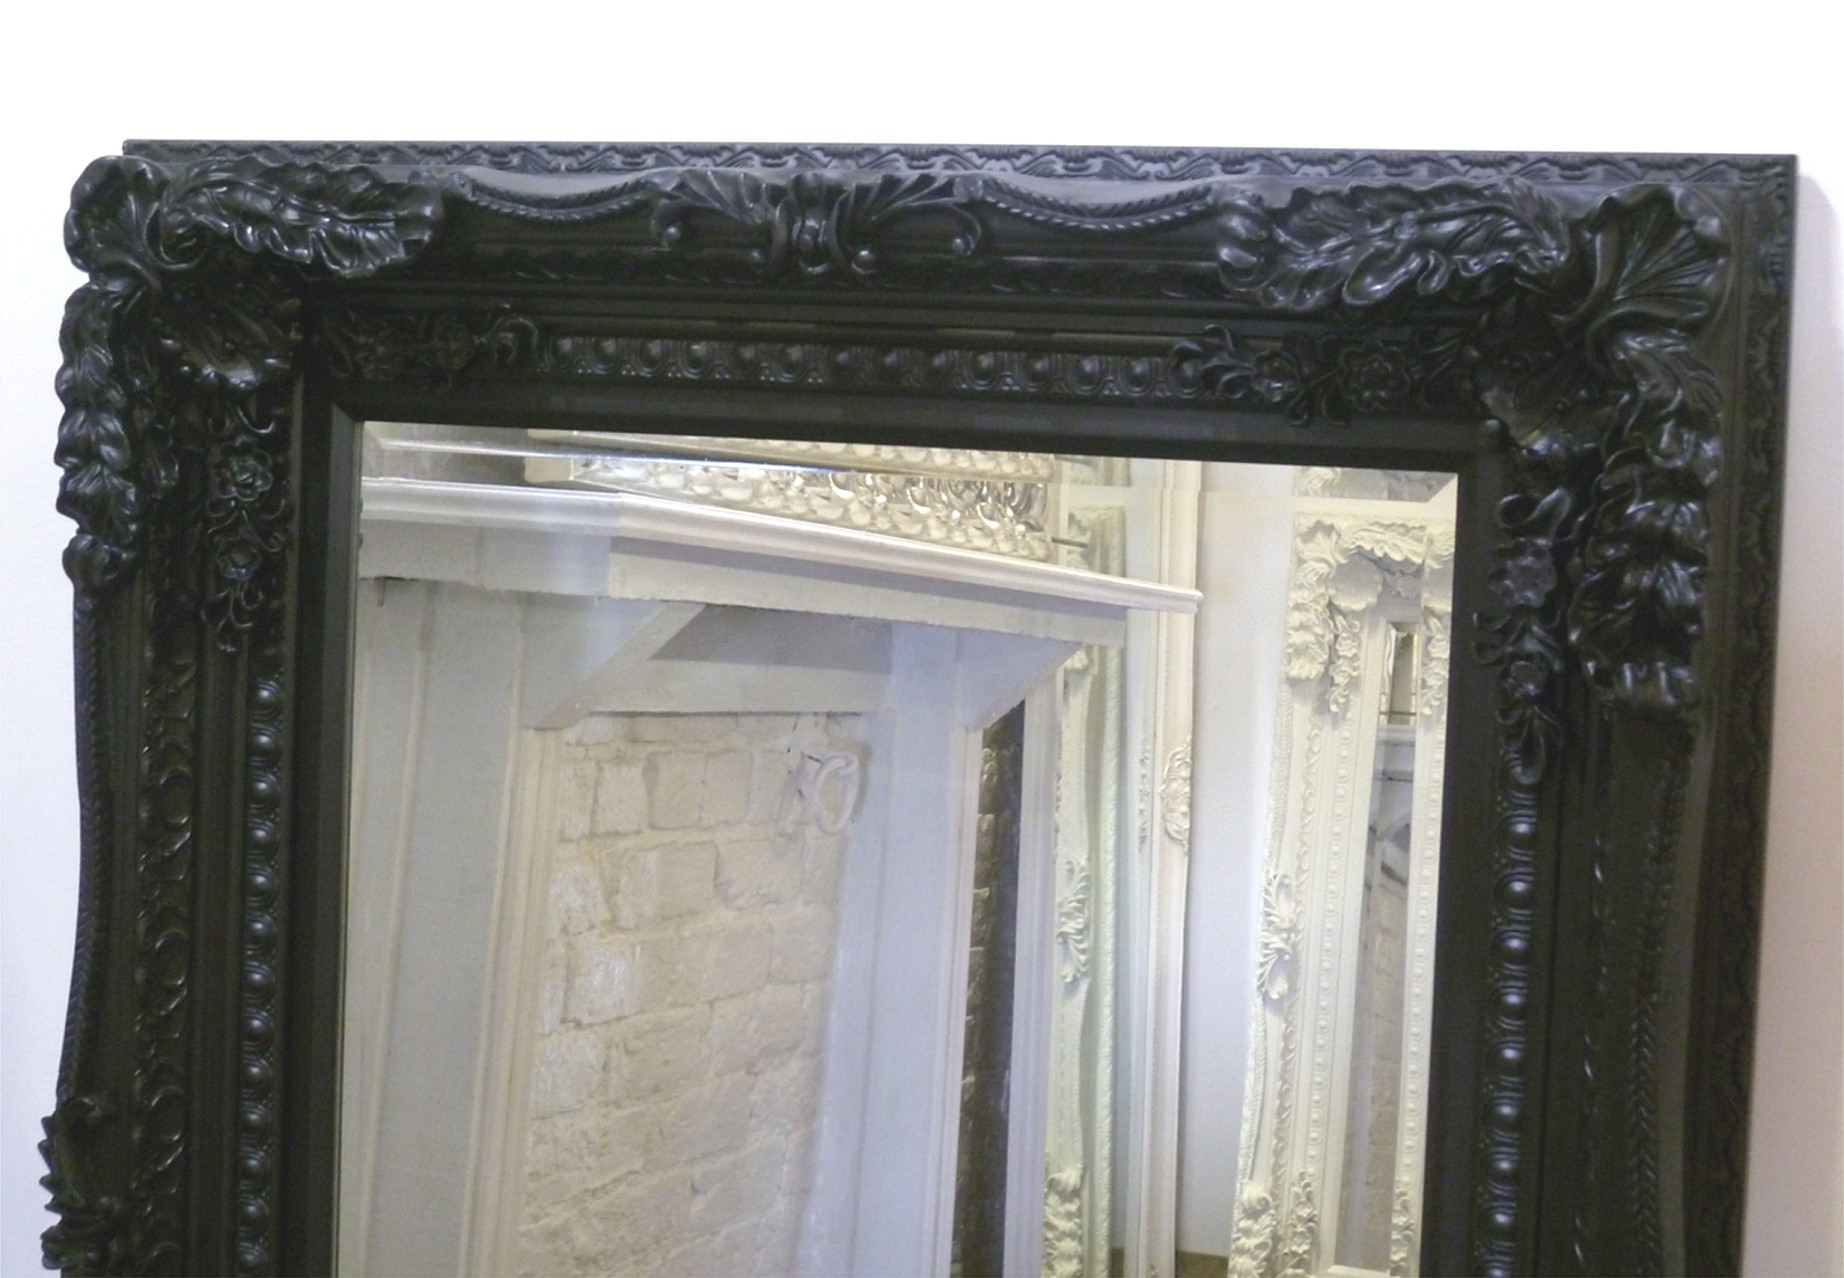 The Best Value Black Chelsea Ornate Mirrors Online With Black Ornate Mirrors (Image 12 of 15)